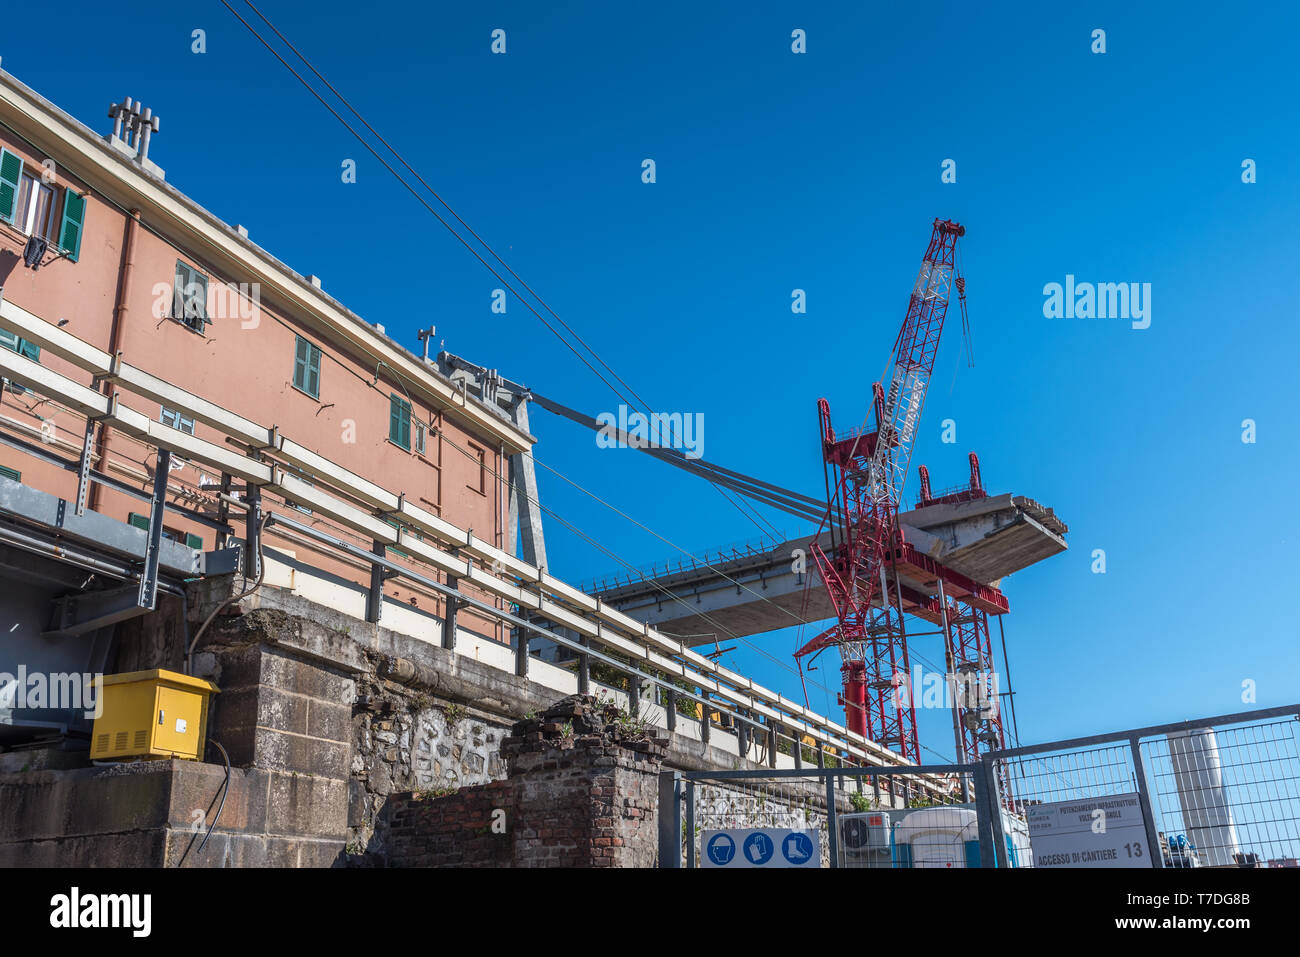 Genoa, Genova, Italy: Demolition work, dismantling works to disassemble what is left of partially collapsed Morandi bridge (Polcevera viaduct) - Stock Image